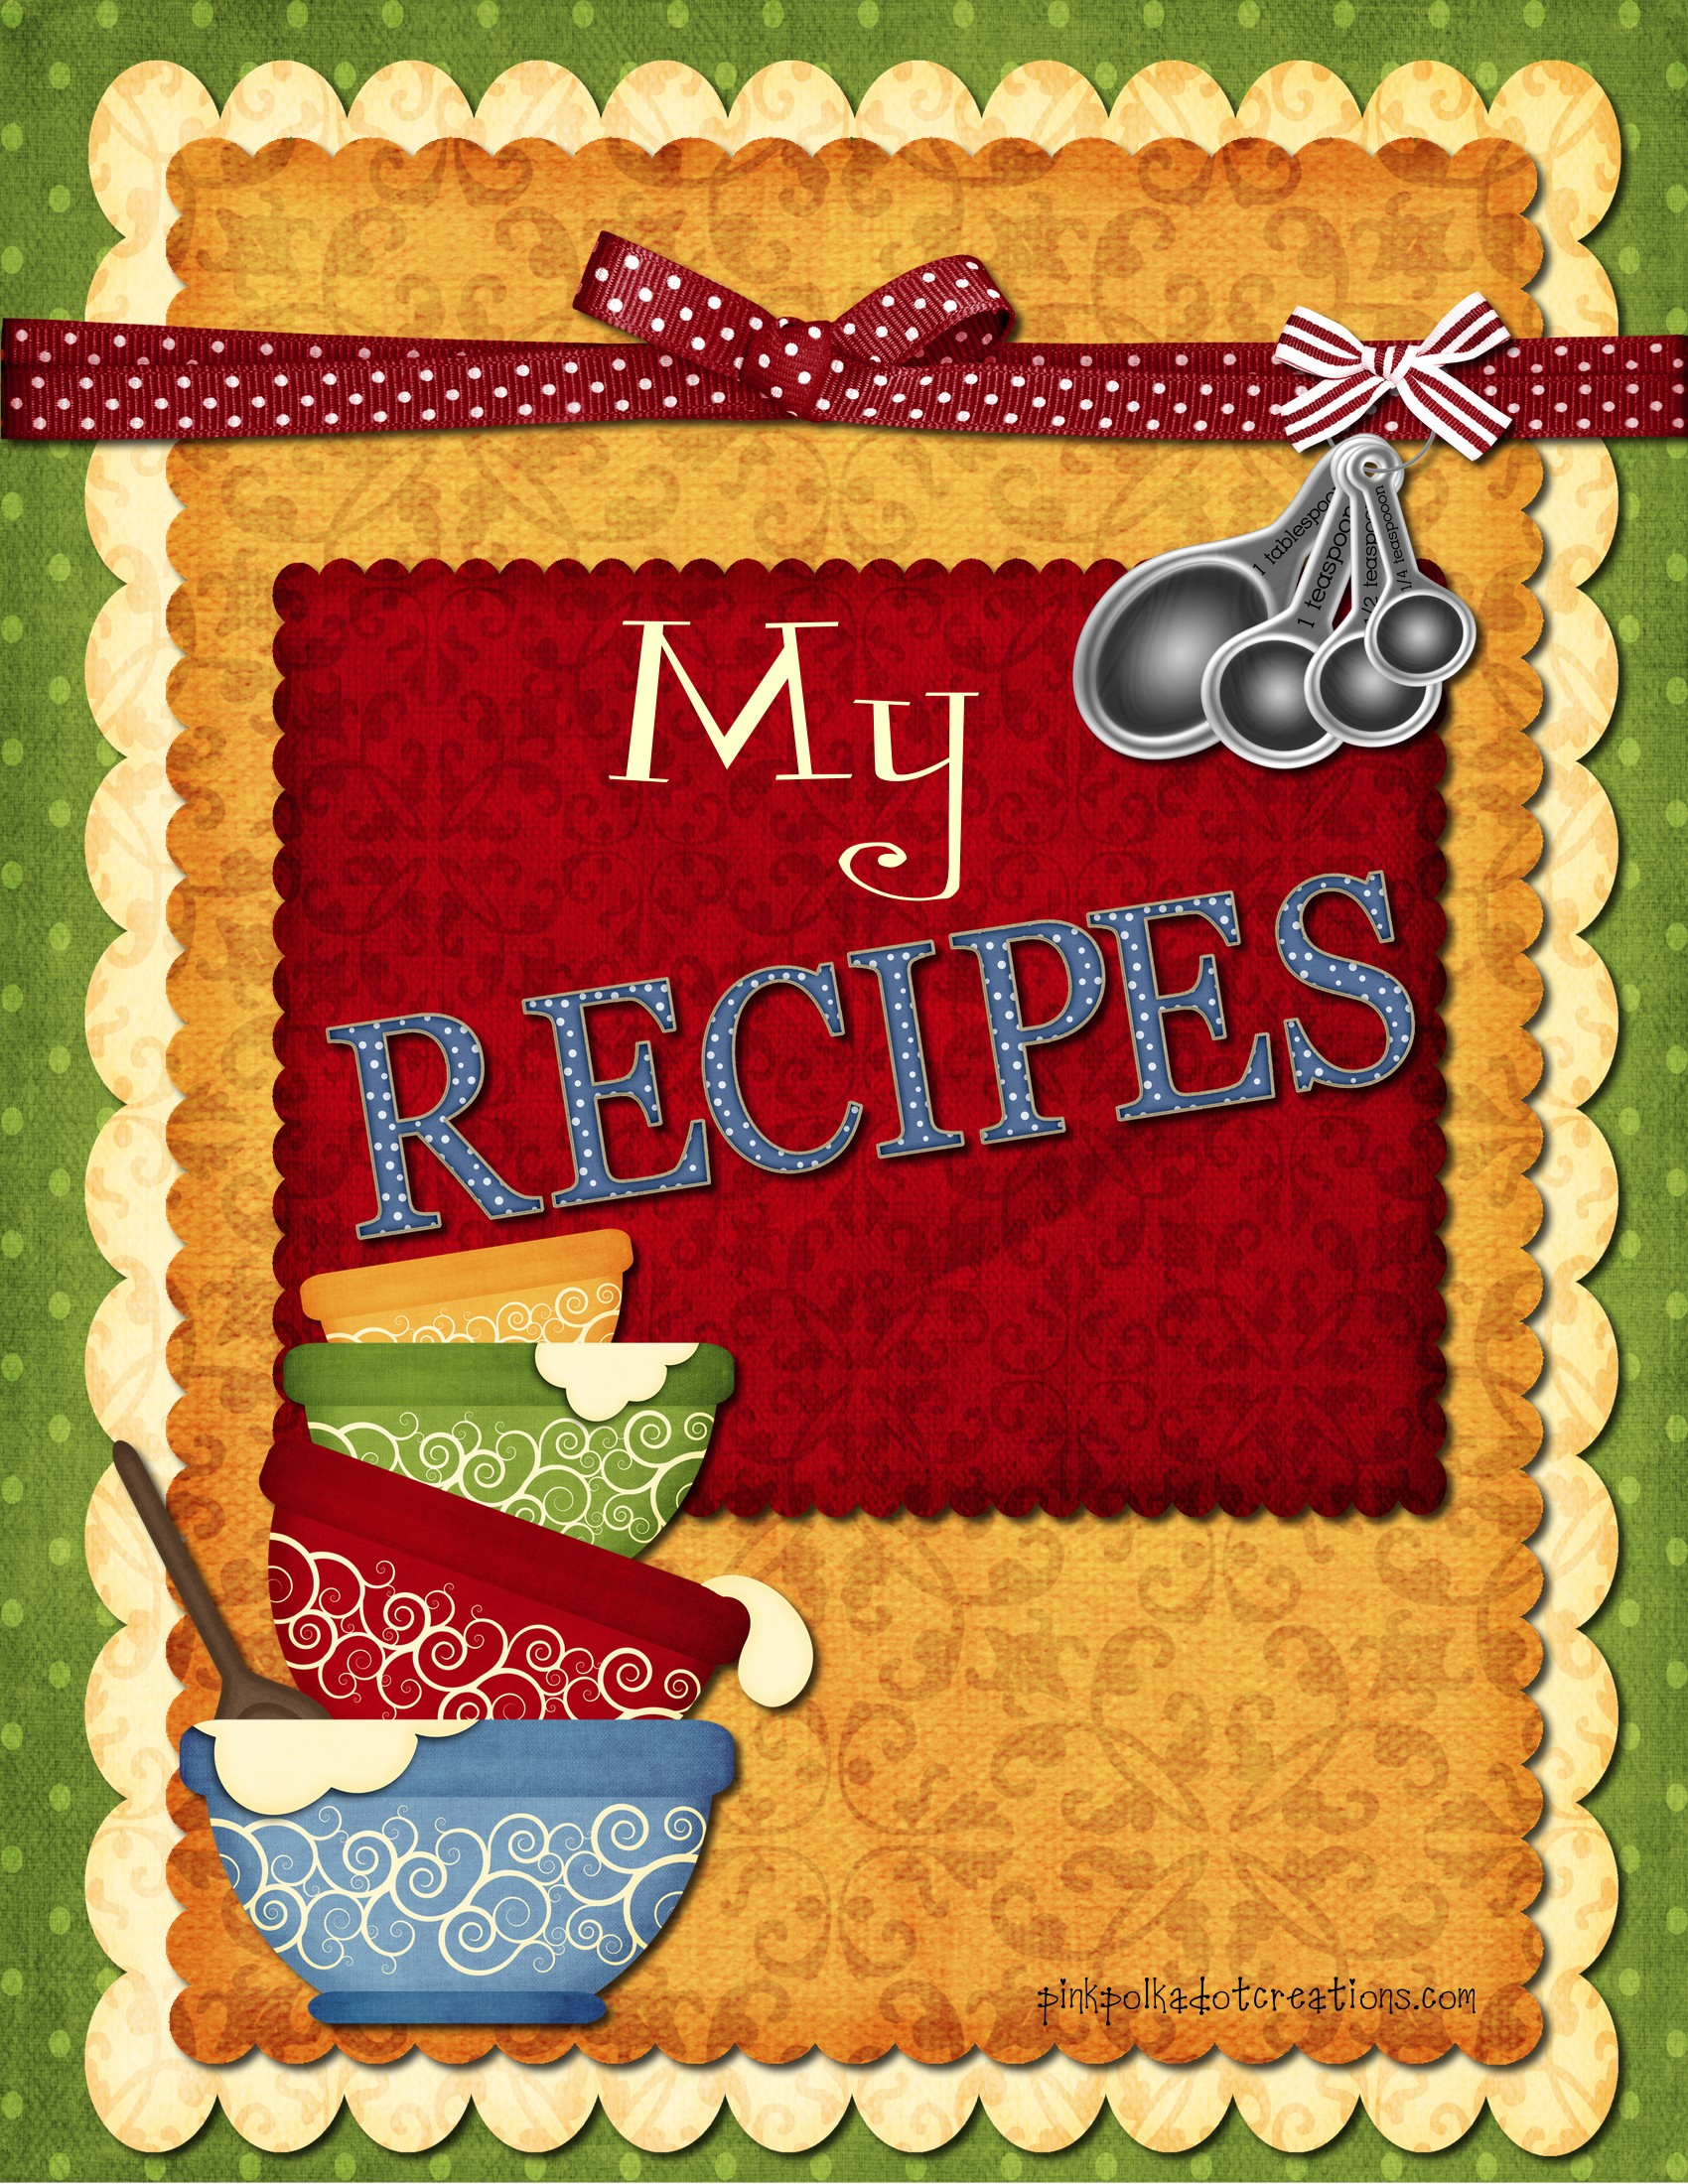 5 Images of Free Printable Recipe Book Cover Template